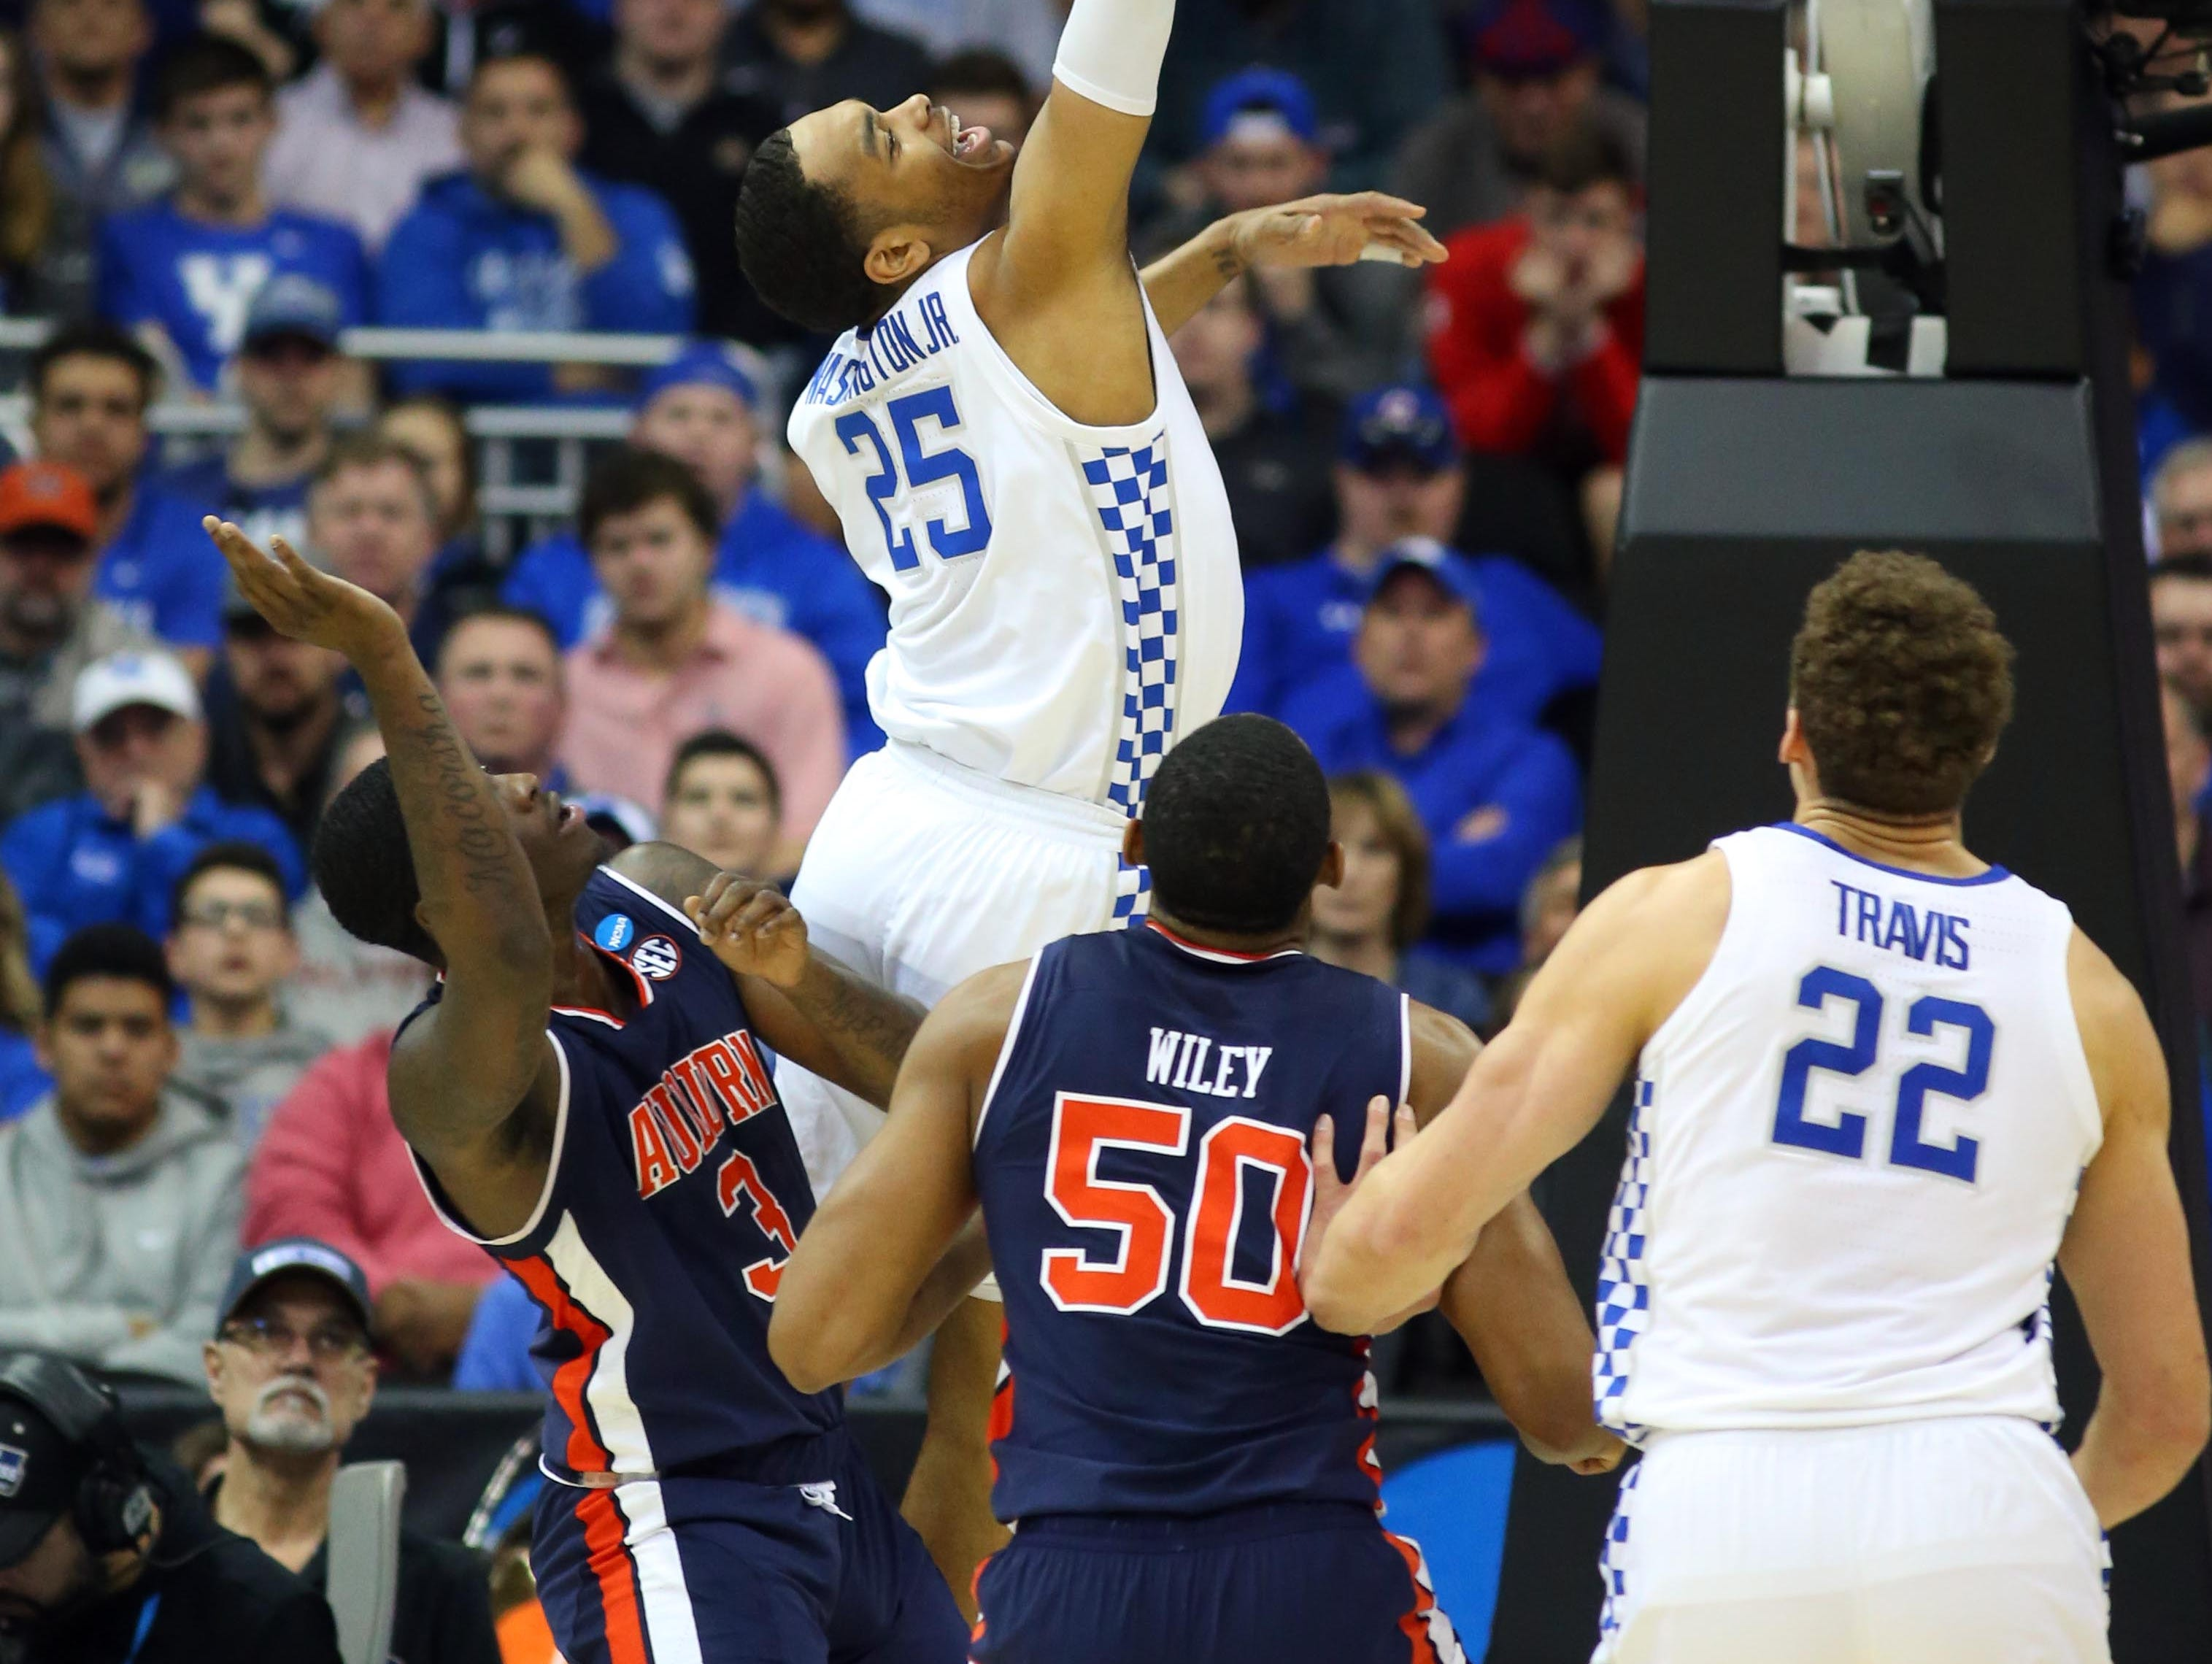 Mar 31, 2019; Kansas City, MO, United States; Kentucky Wildcats forward PJ Washington (25) shoots over Auburn Tigers forward Danjel Purifoy (3) and center Austin Wiley (50) during the first half in the championship game of the midwest regional of the 2019 NCAA Tournament at Sprint Center. Mandatory Credit: Jay Biggerstaff-USA TODAY Sports